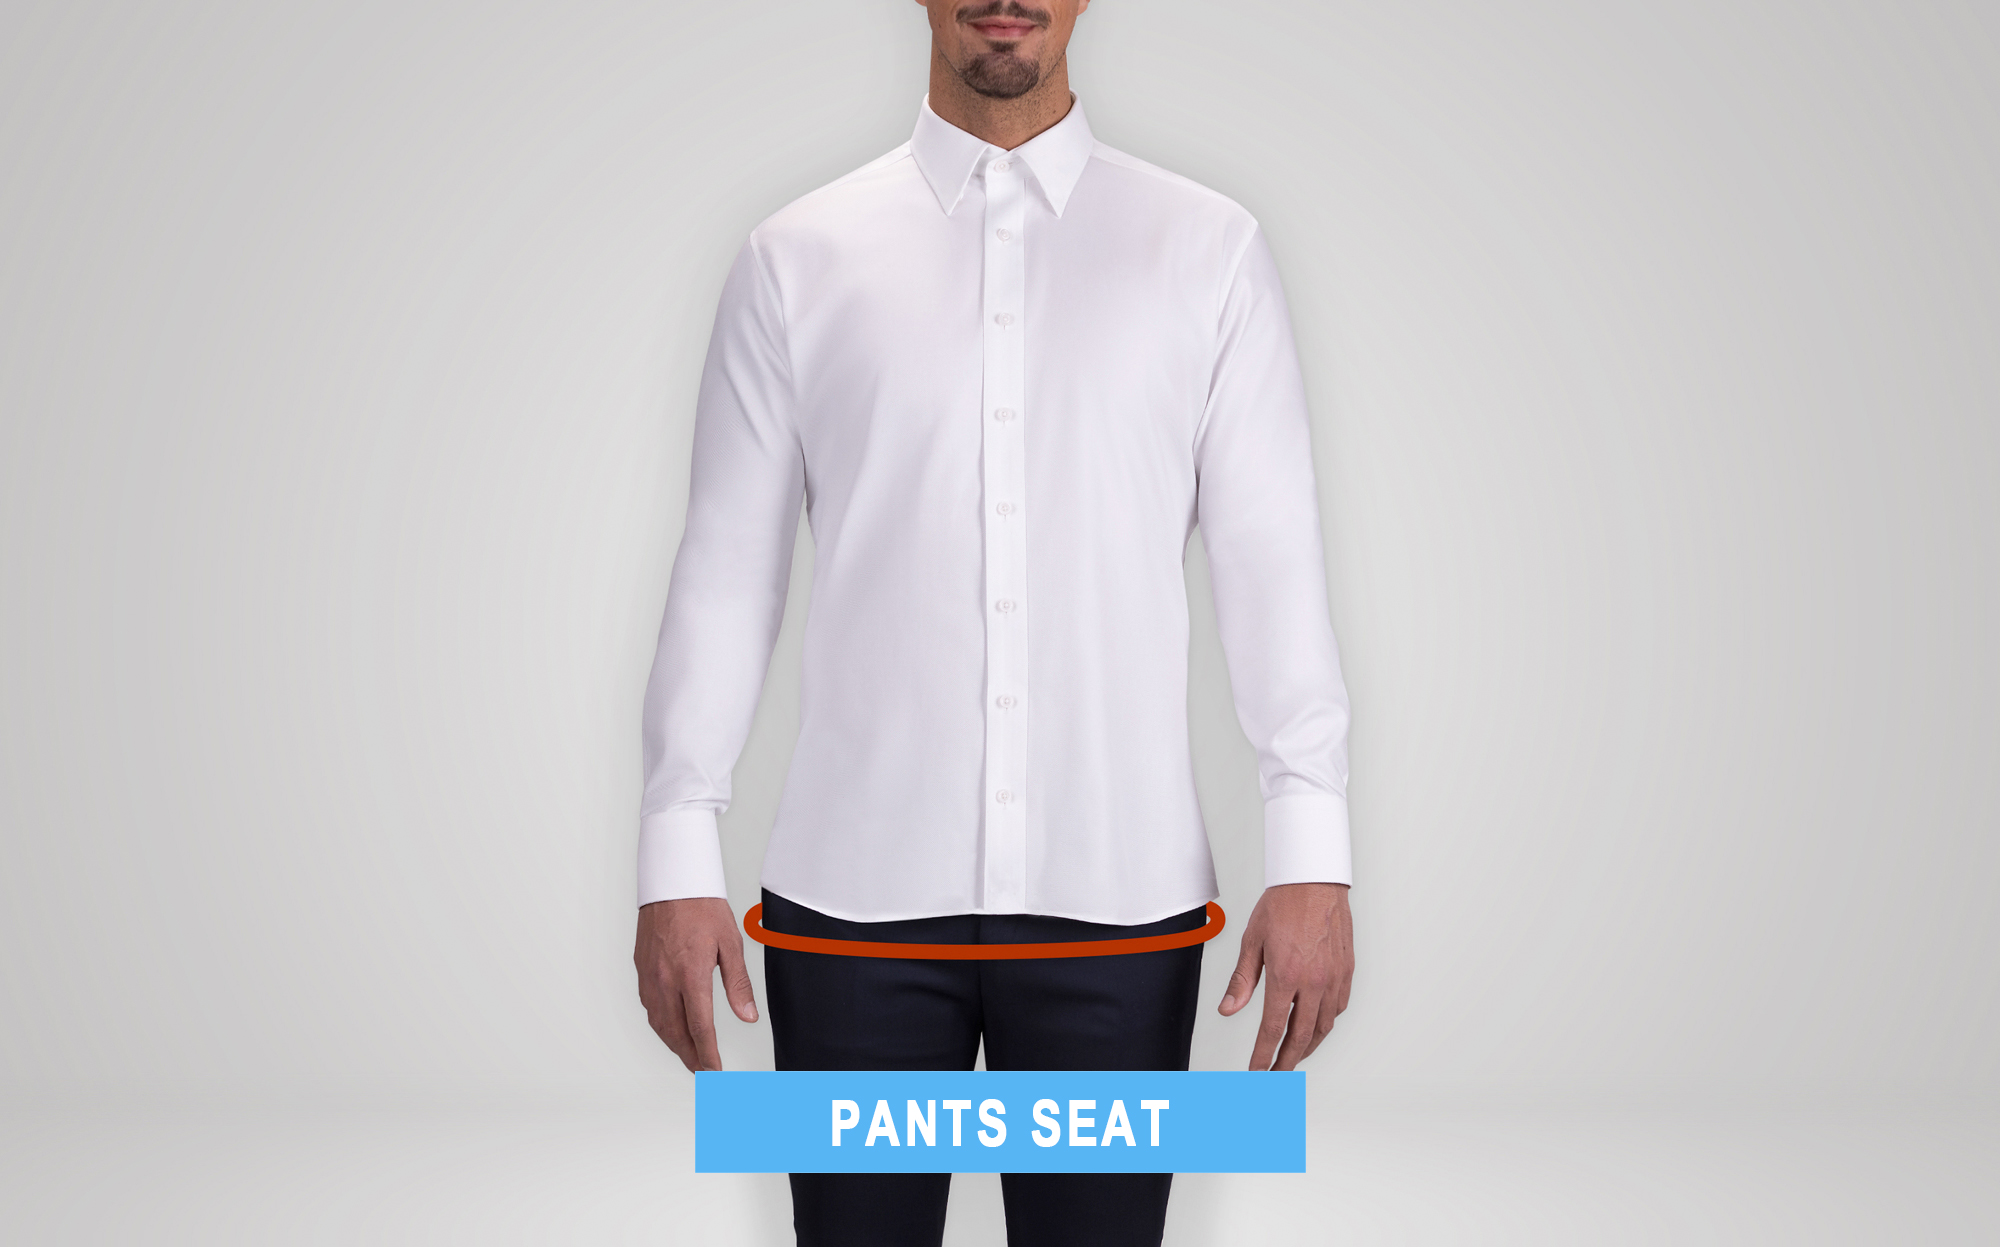 how to measure pants' seat